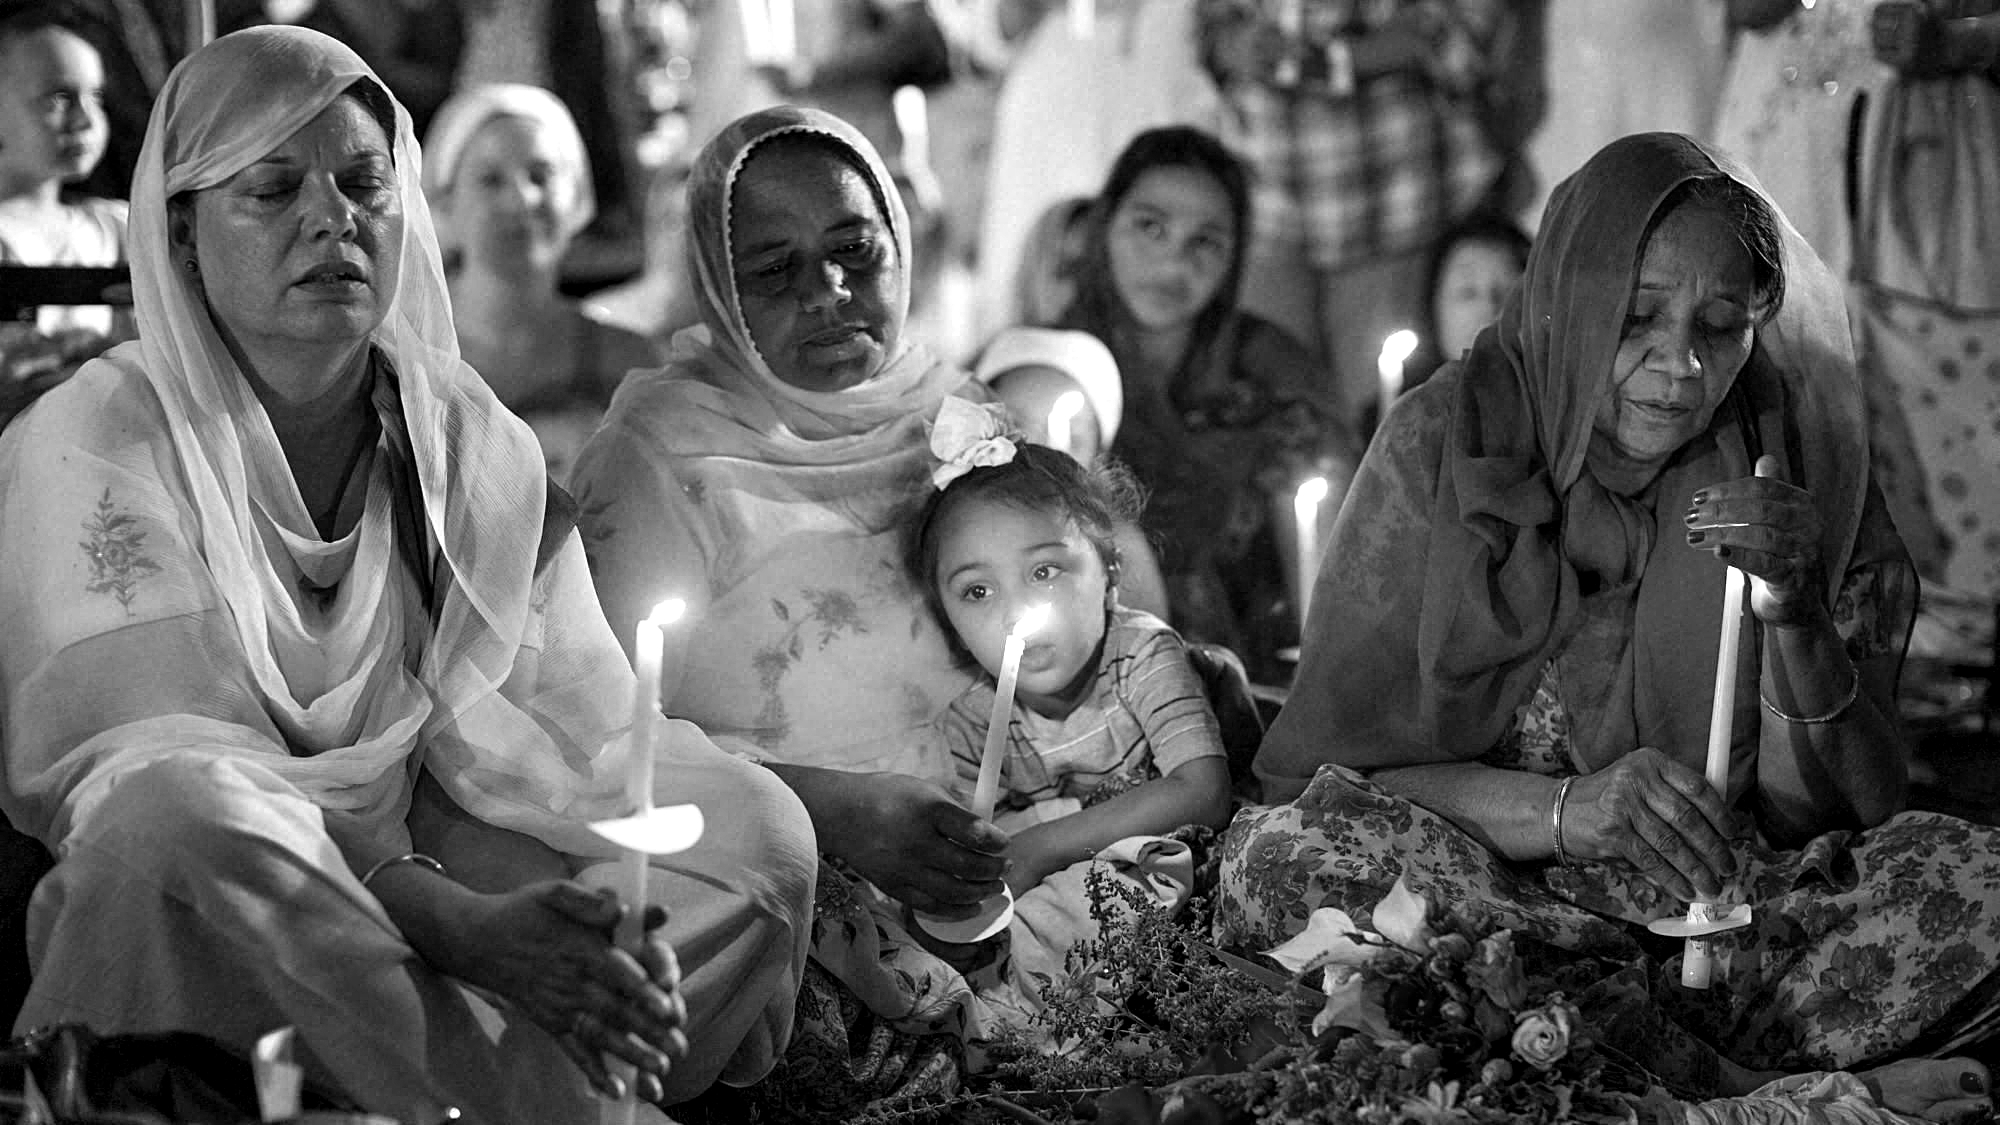 A year after the shooting, the Oak Creek community comes together at The Sikh Temple of Wisconsin to remember the victims and support their families. (Source:  Waking in Oak Creek )